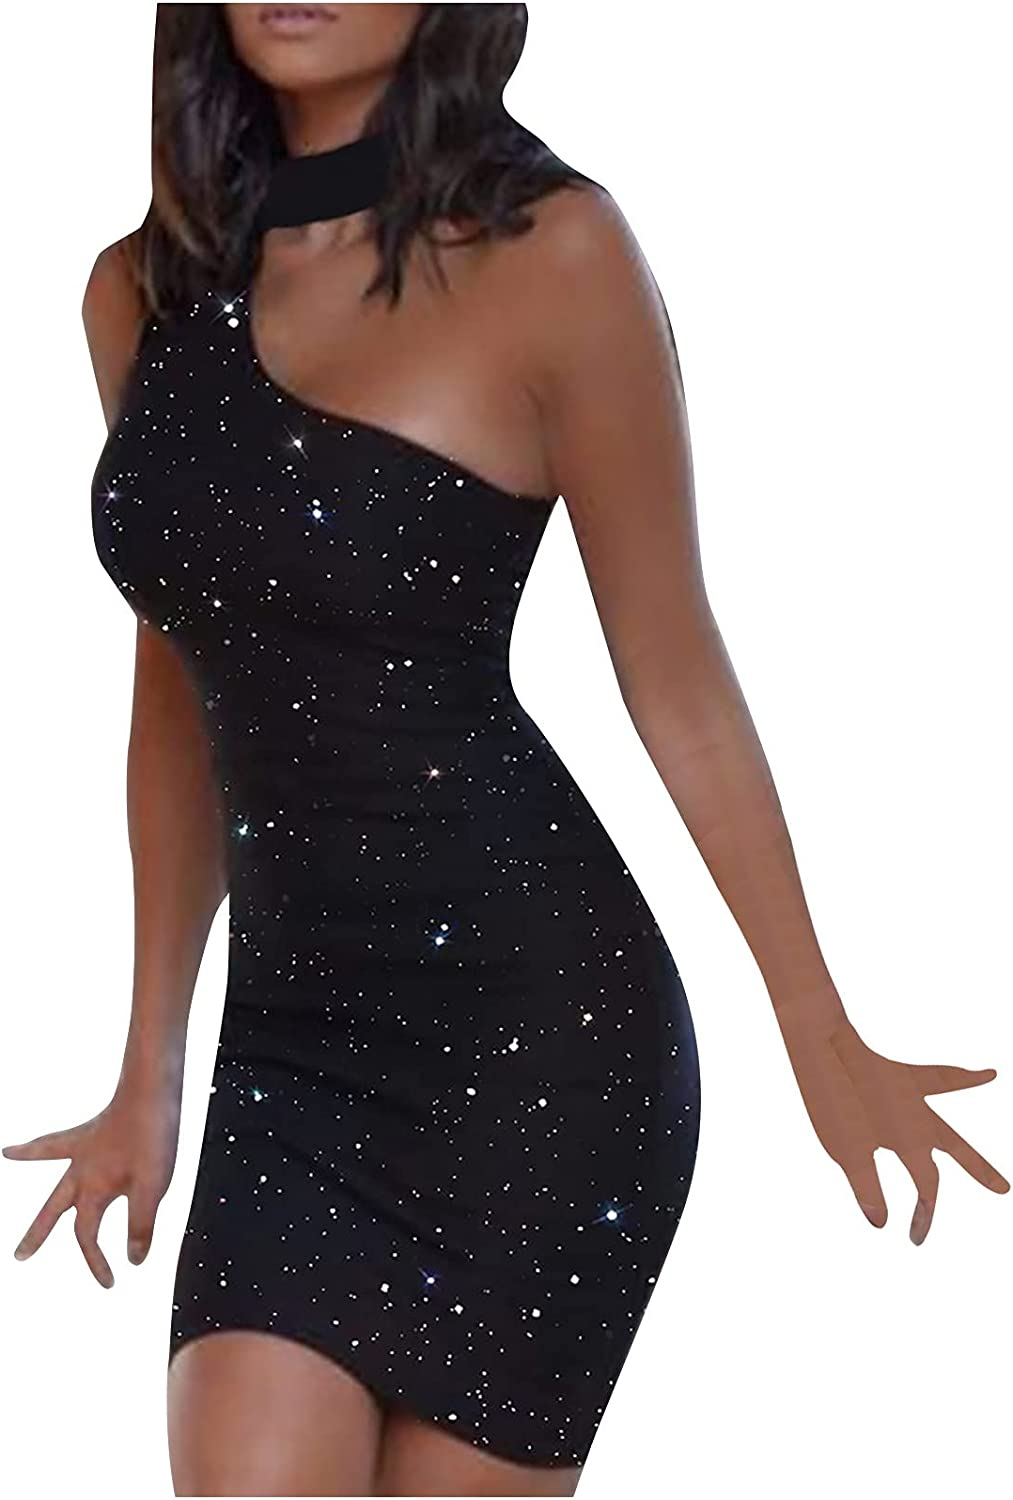 Sexy Dresses for Women Sleeveless One Shoulder Sparkly Club Mini Dress Trendy Evening Cocktail Bodycon Party Dress